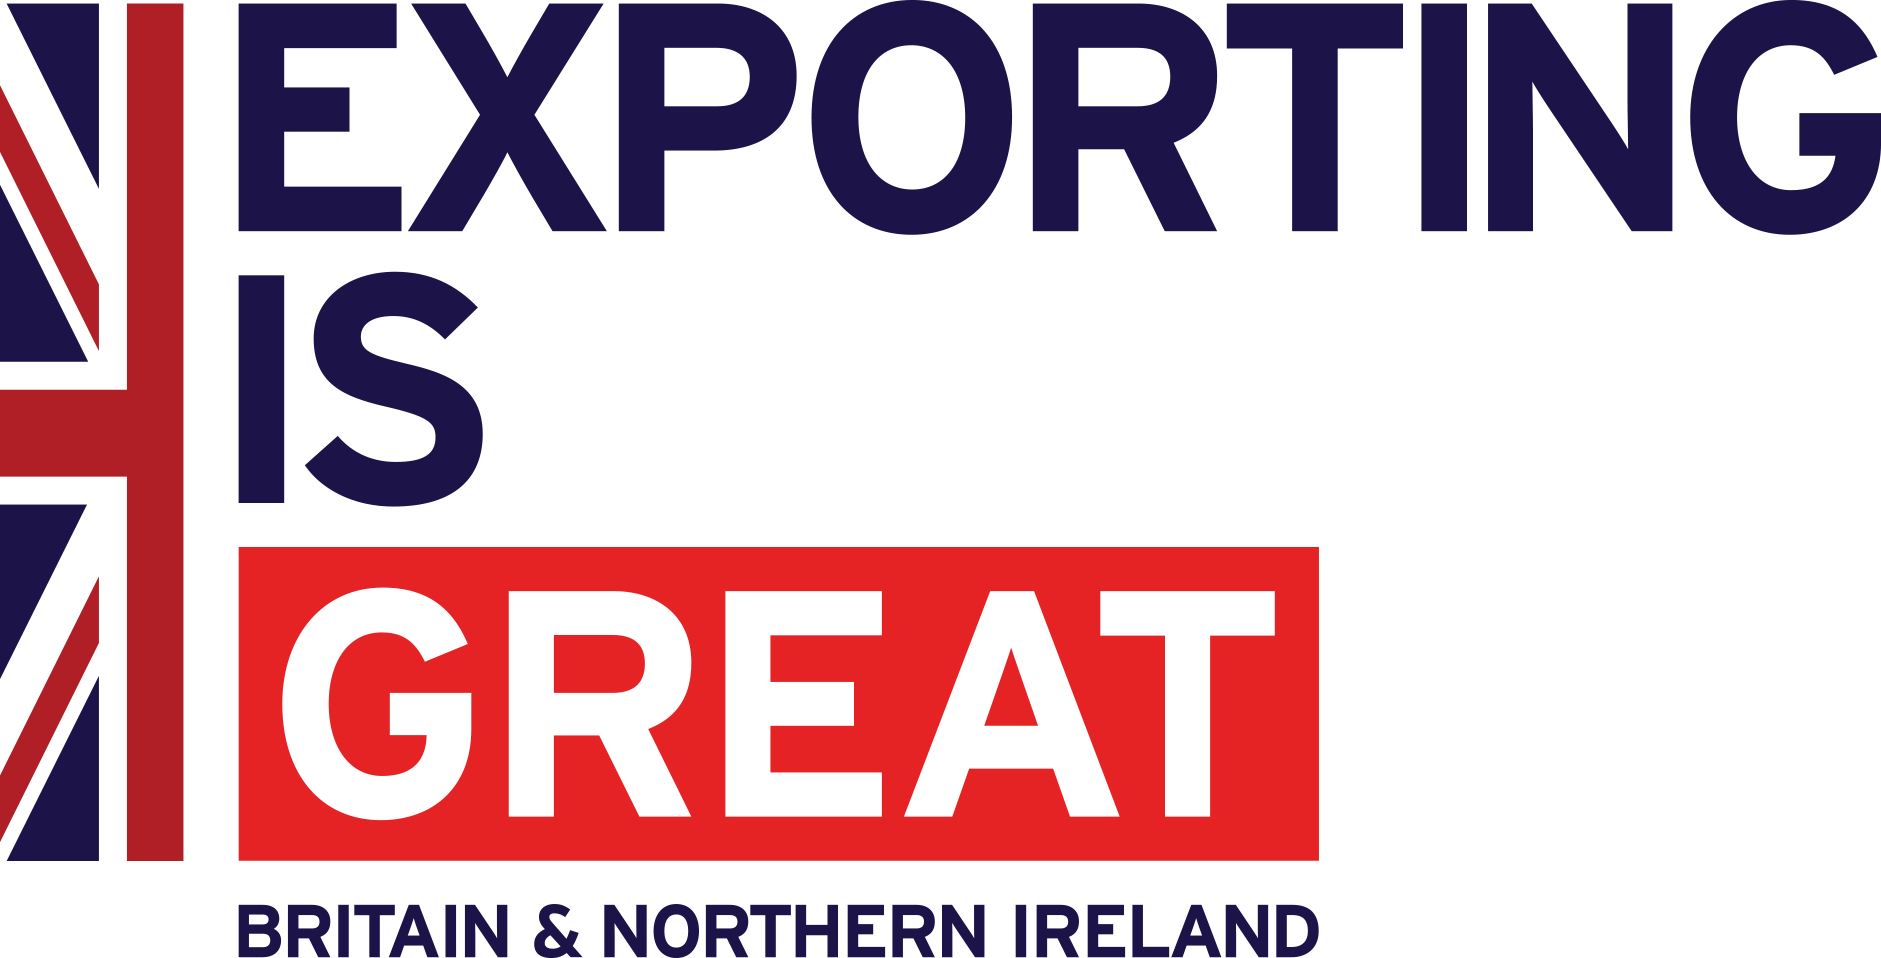 Exporting_Is_Great_UK_logo.jpg